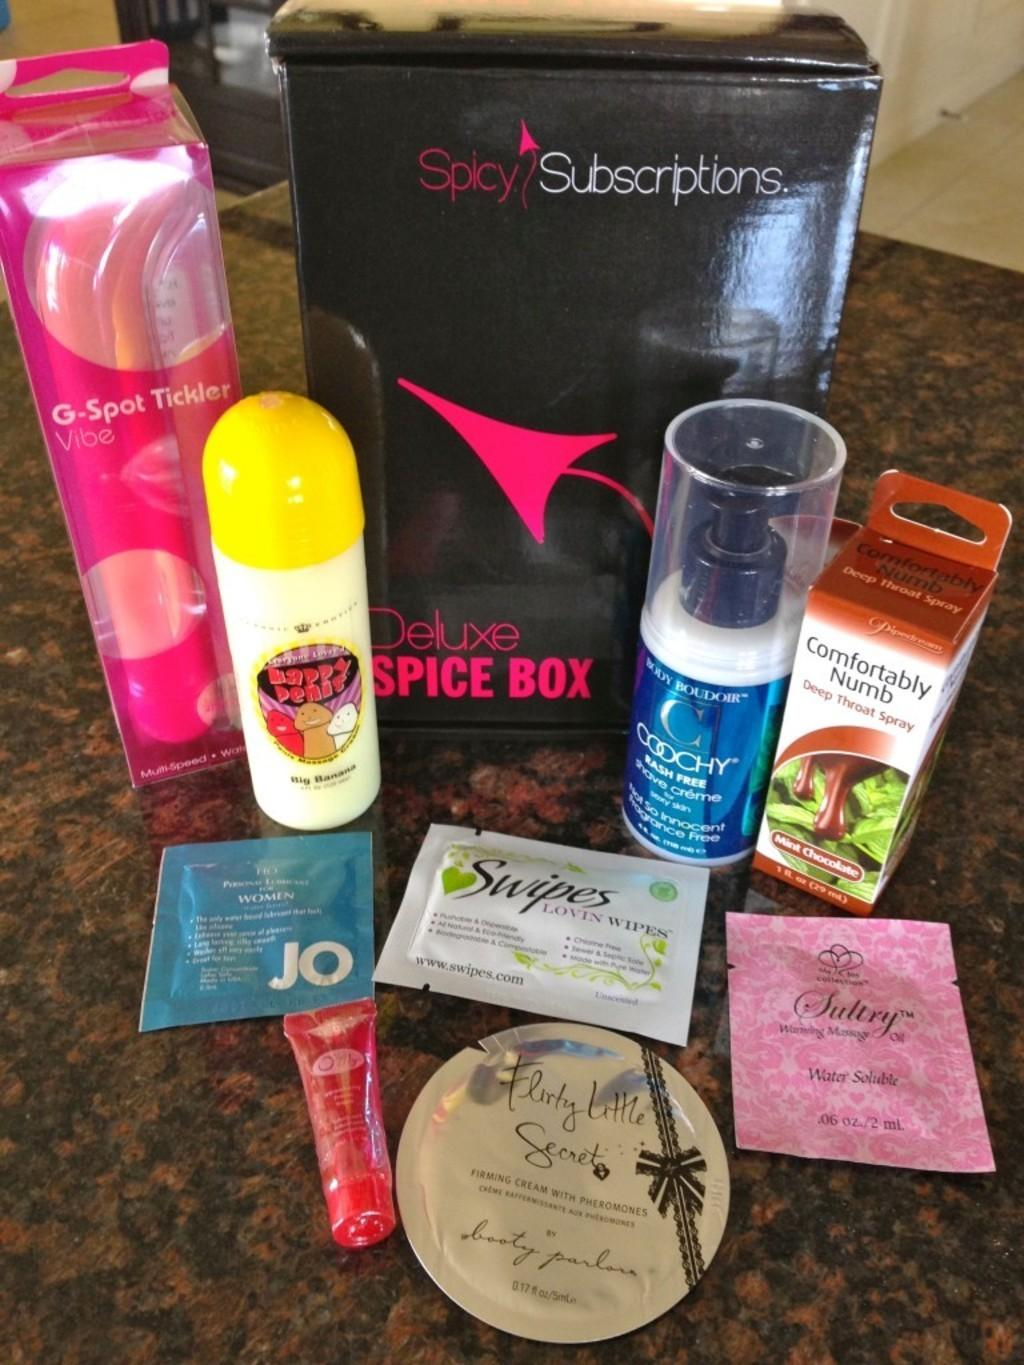 Spicy Subscriptions July Deluxe Spice Box